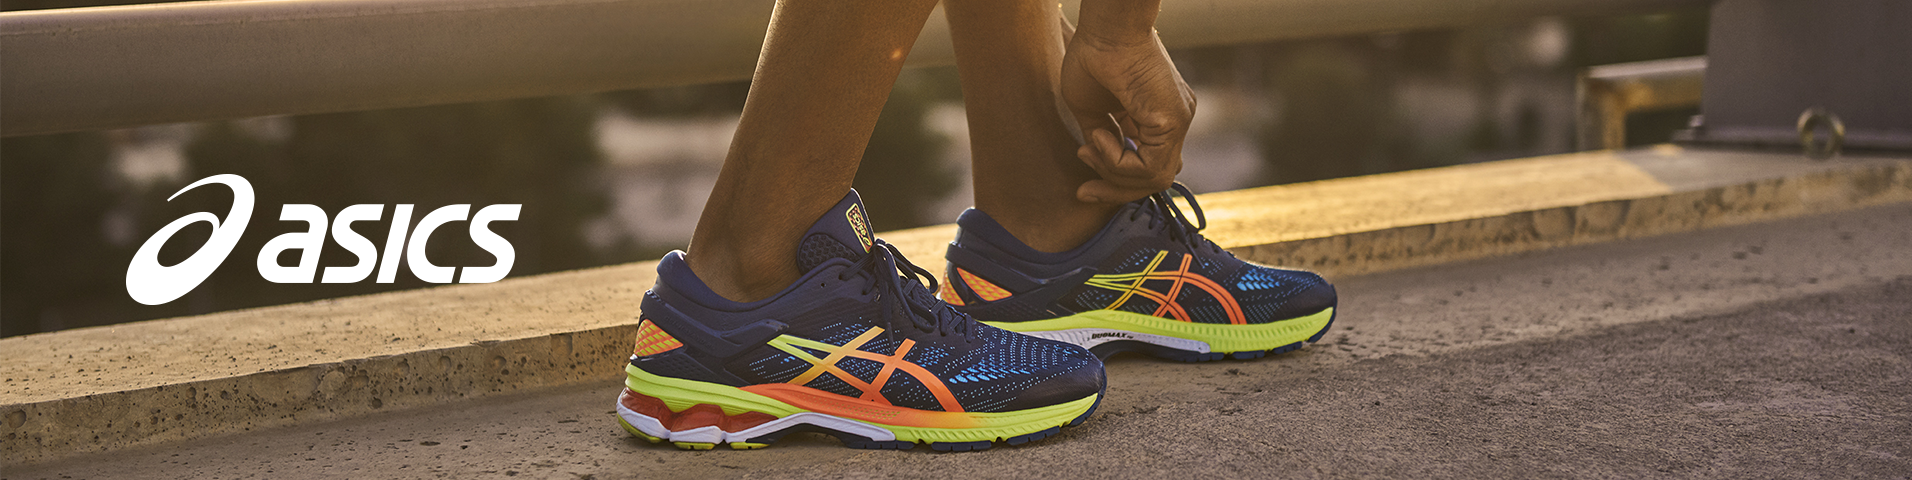 promo asics chaussures